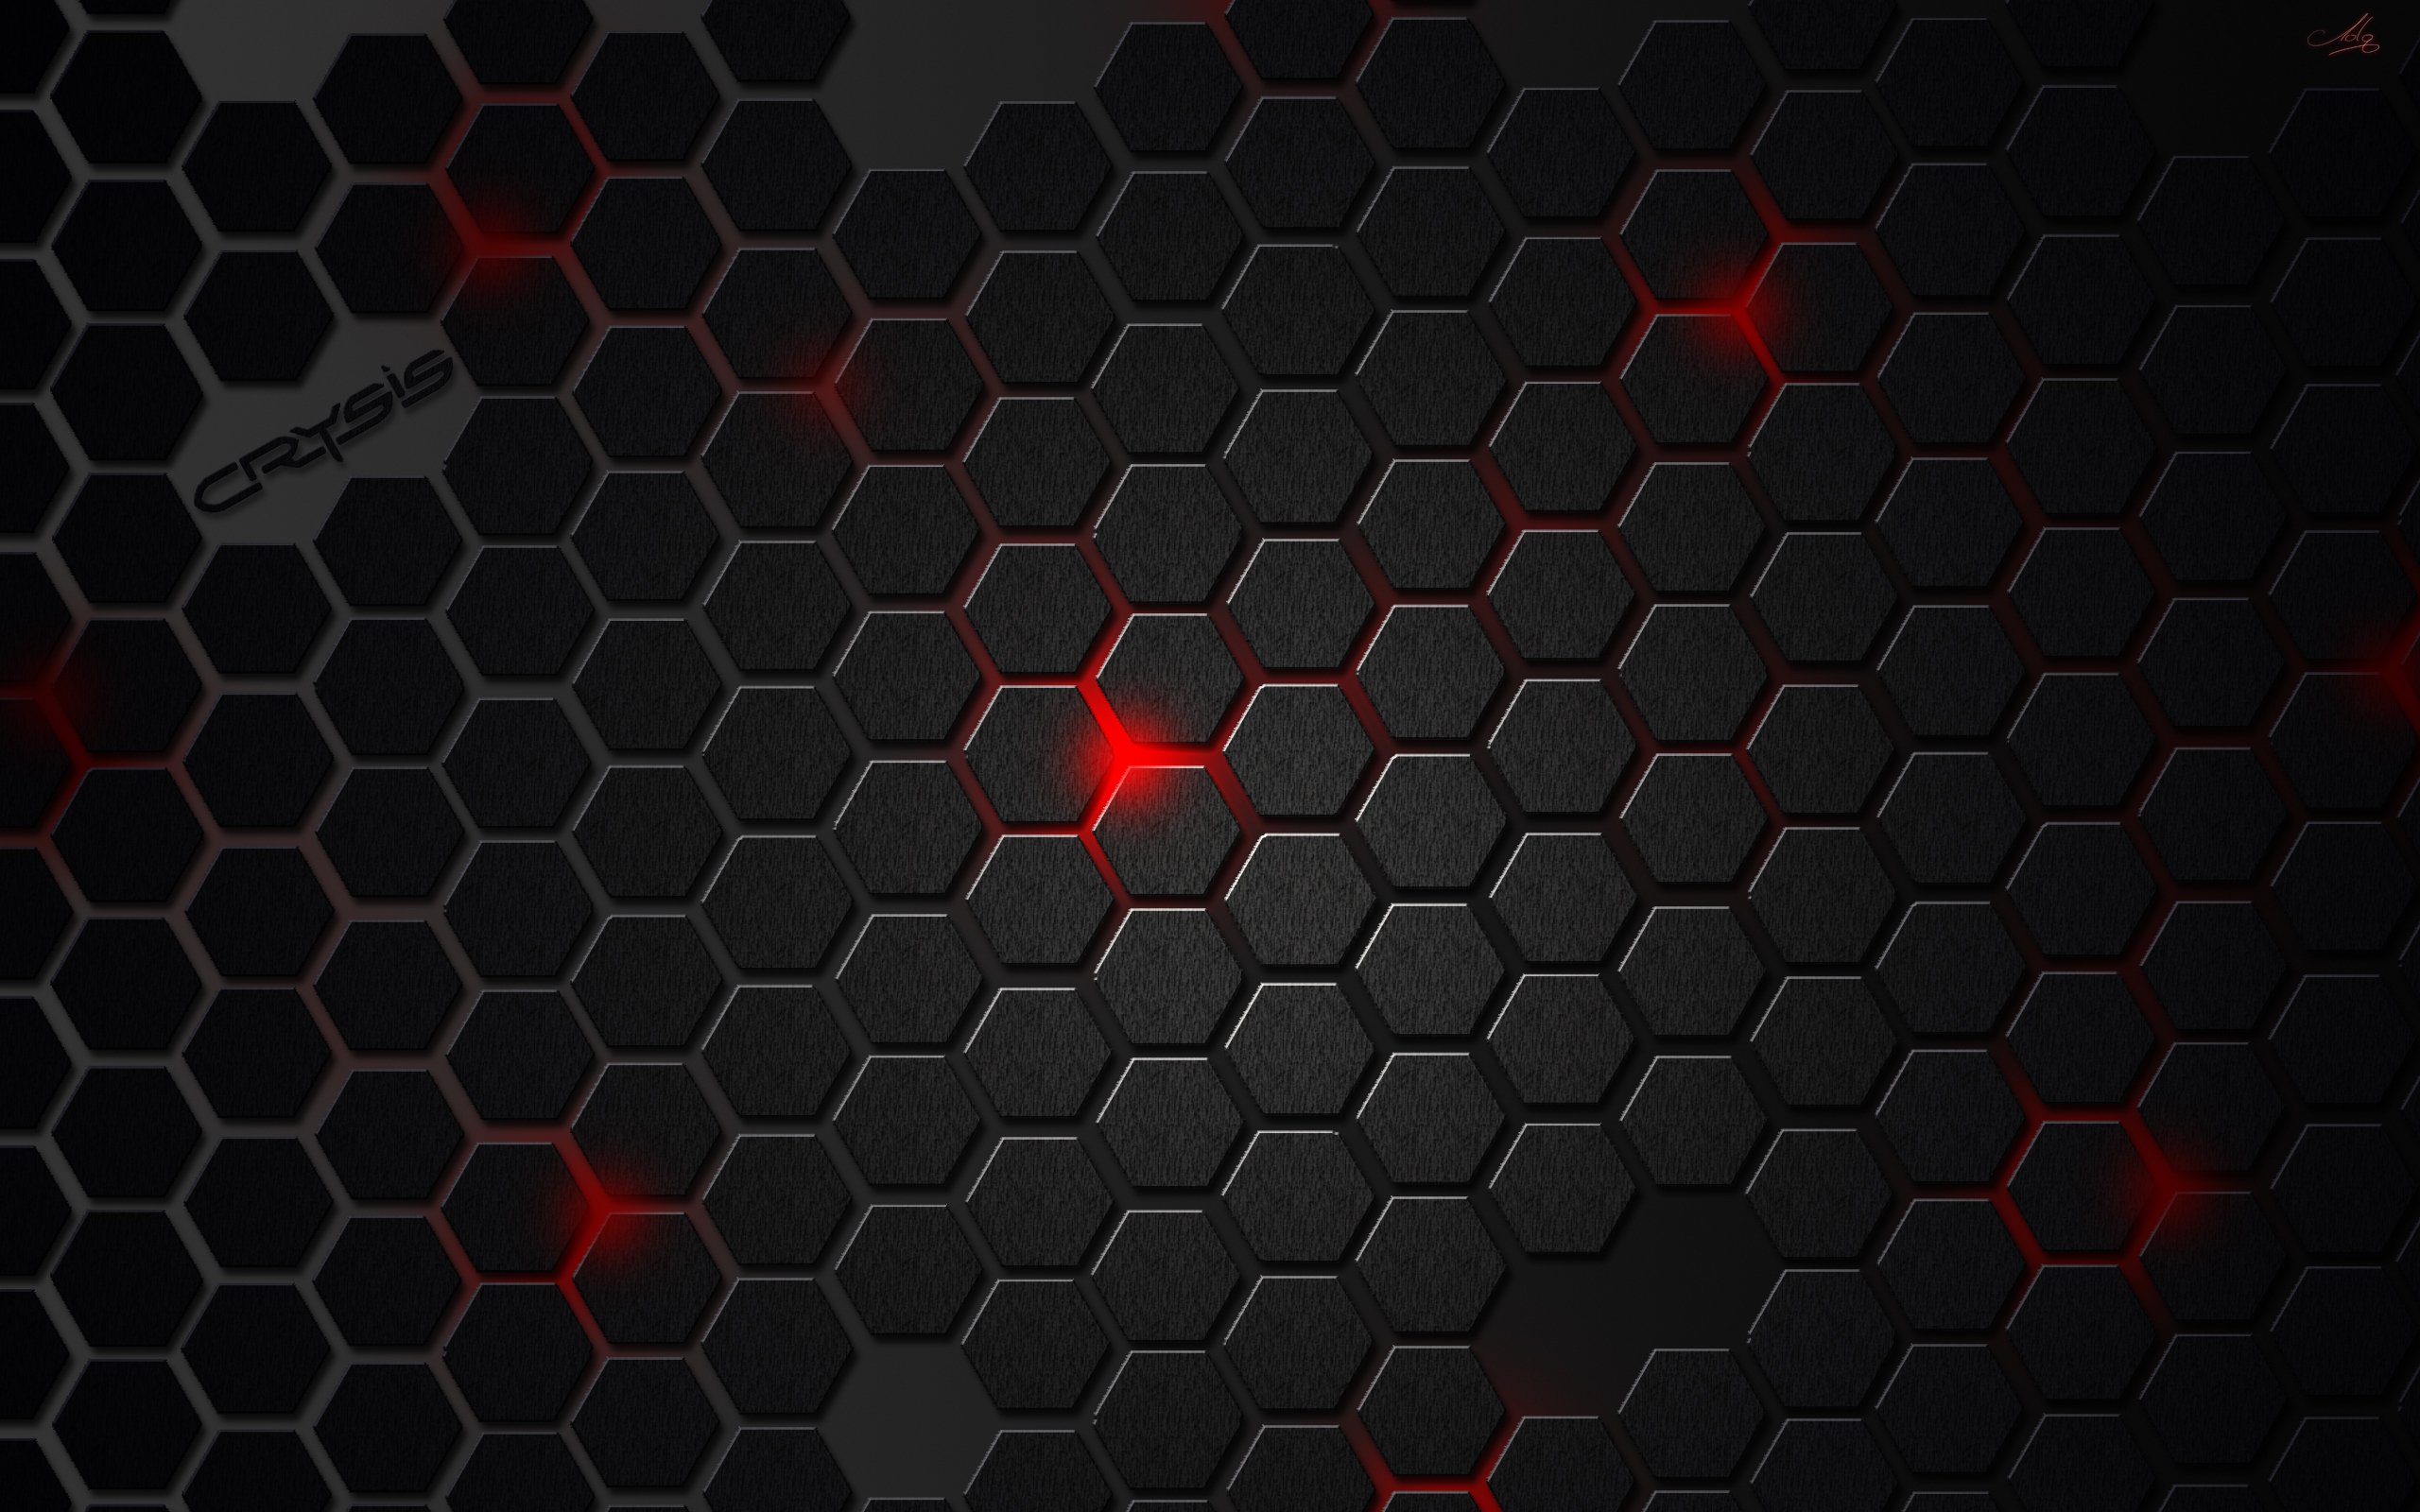 Black and white wallpapers grey abstract wallpaper html code - Black And Red Wallpaper 1920x1080 Wallpapersafari